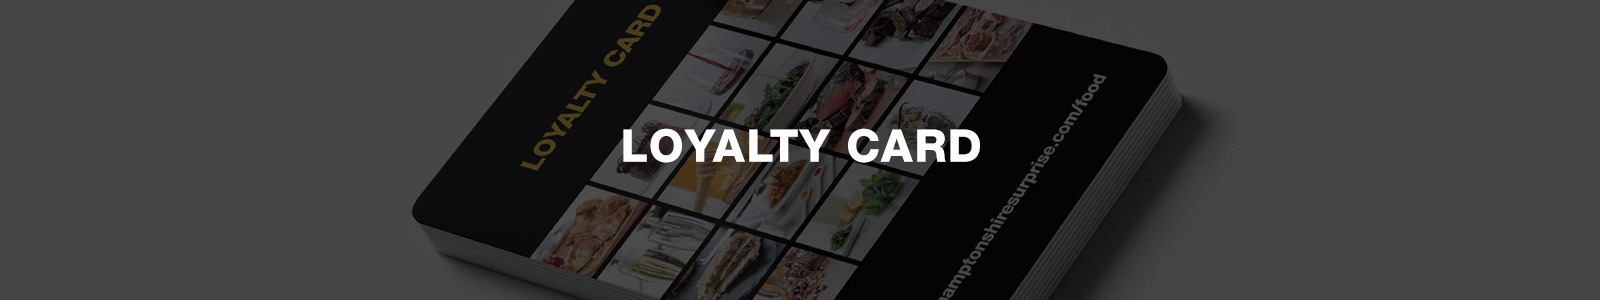 my loyalty card